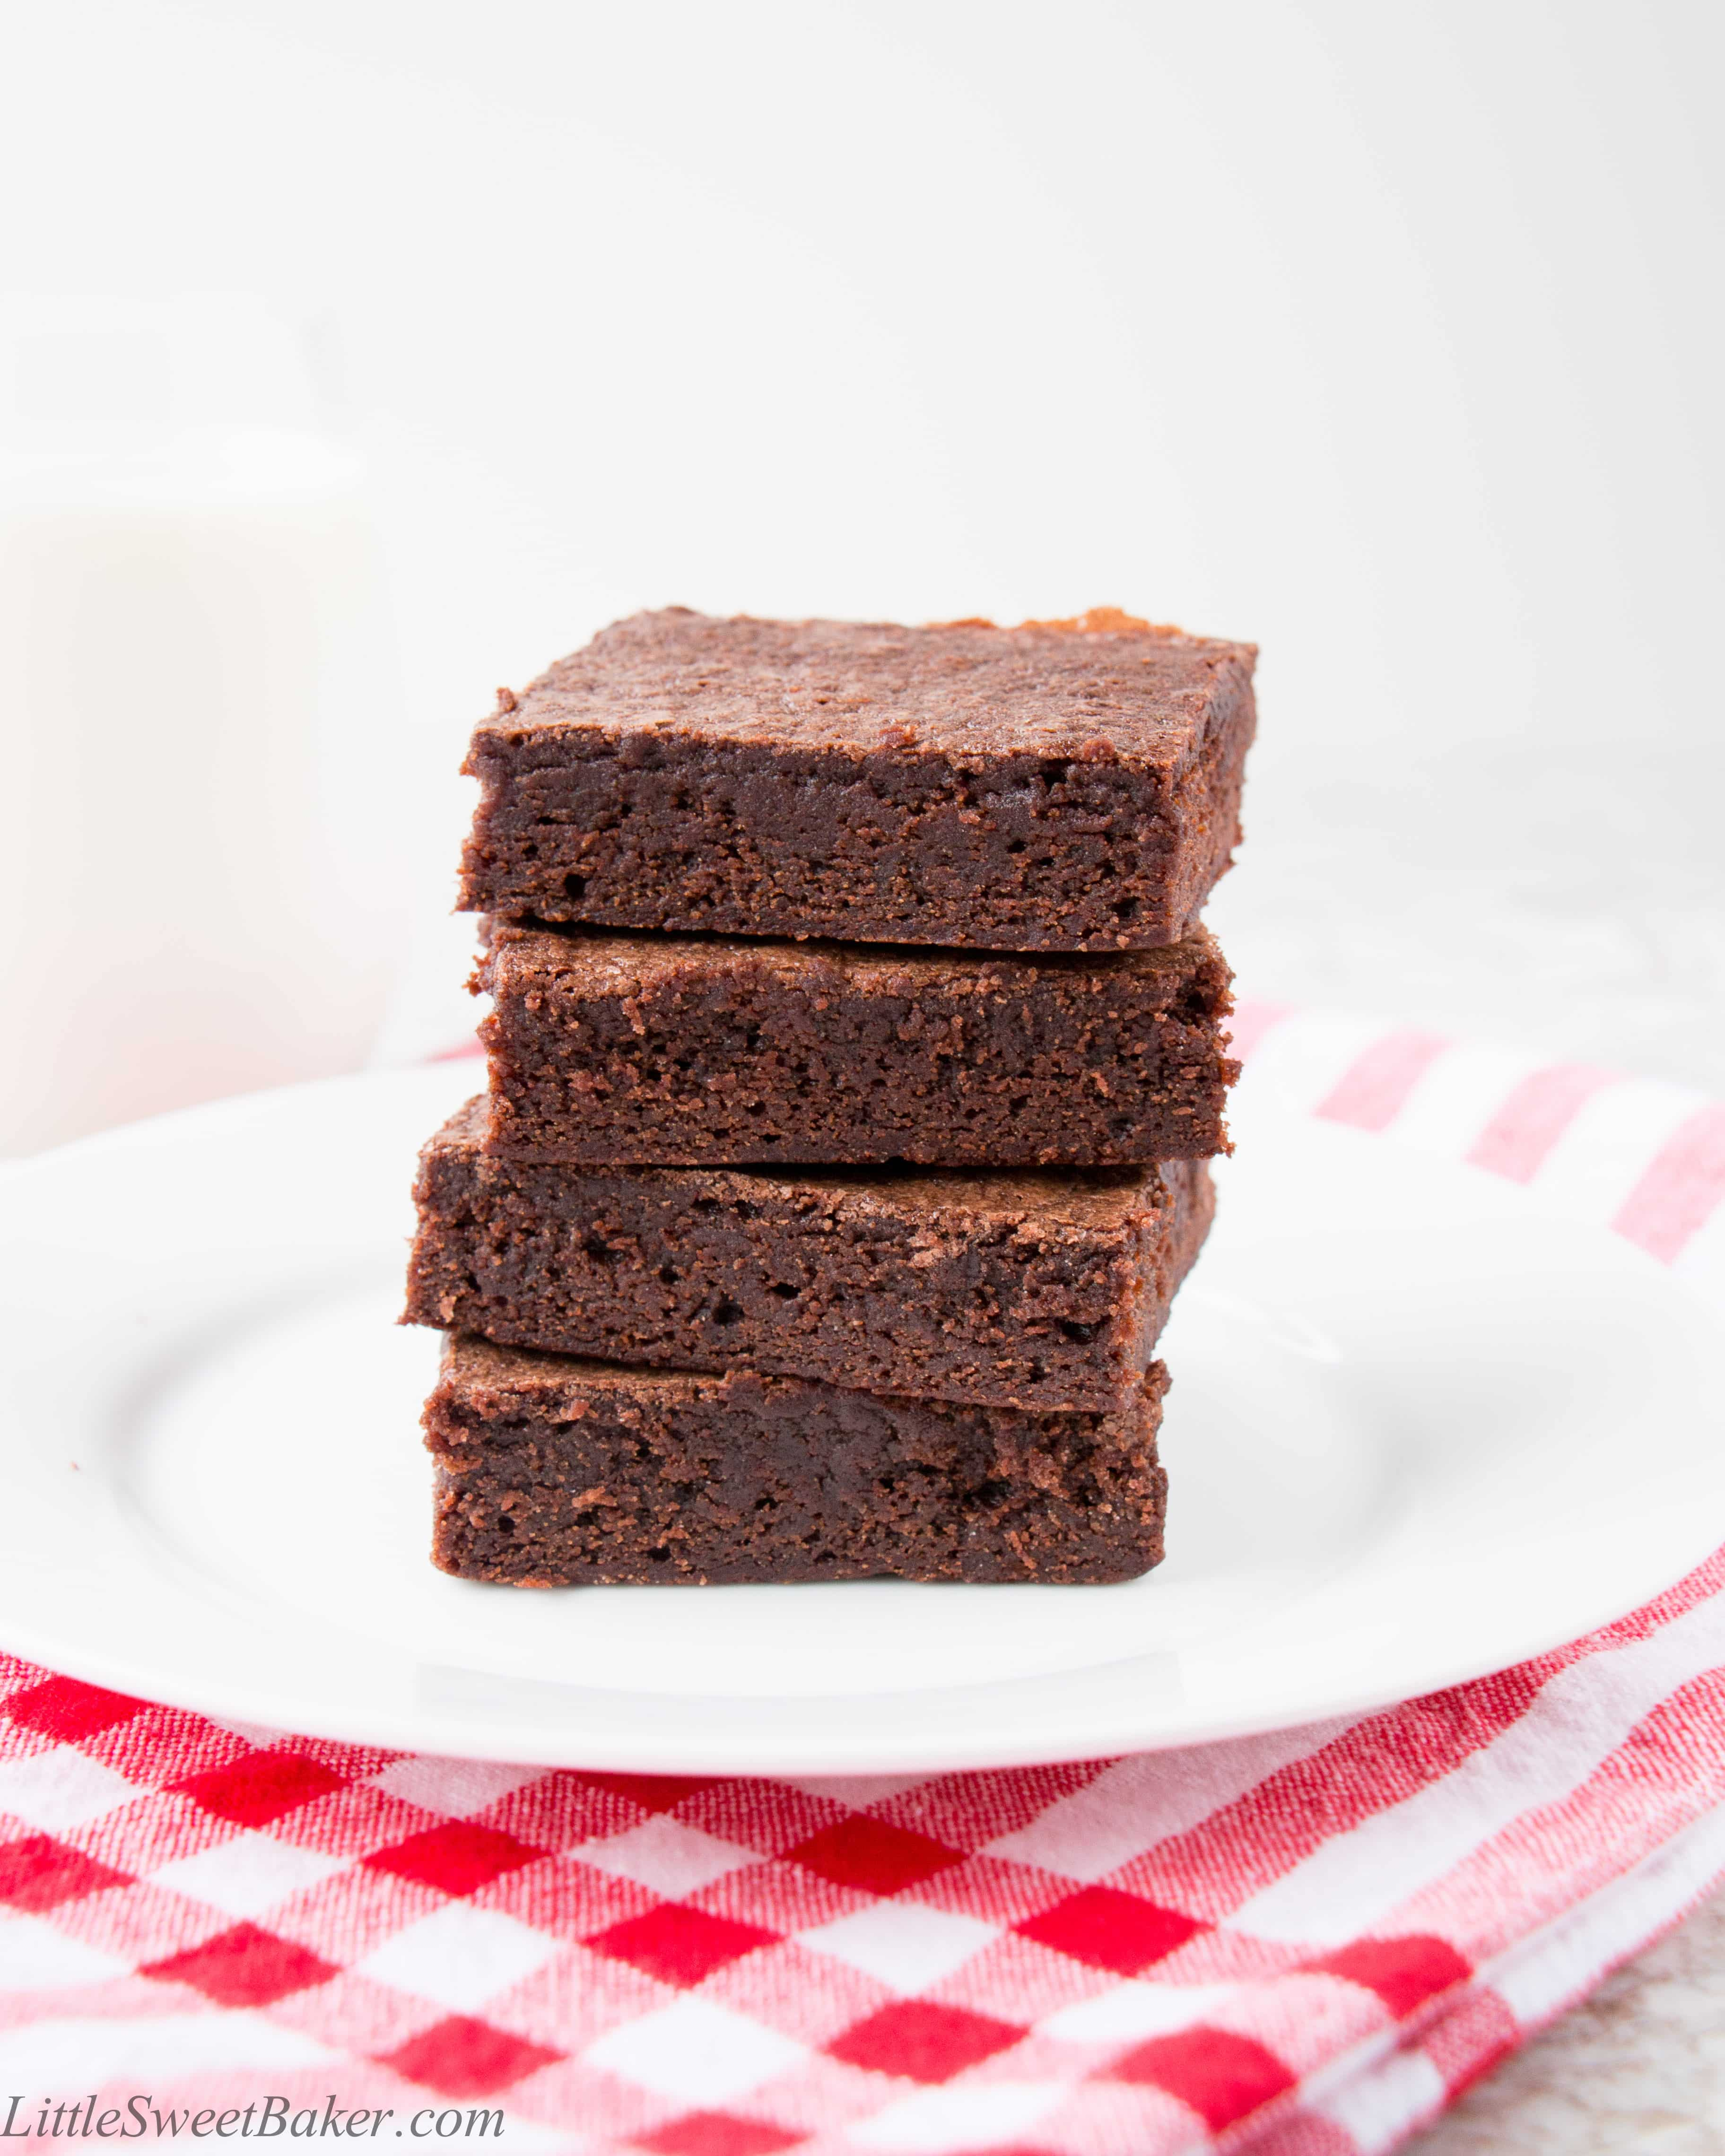 Chocolate brownies recipes easy